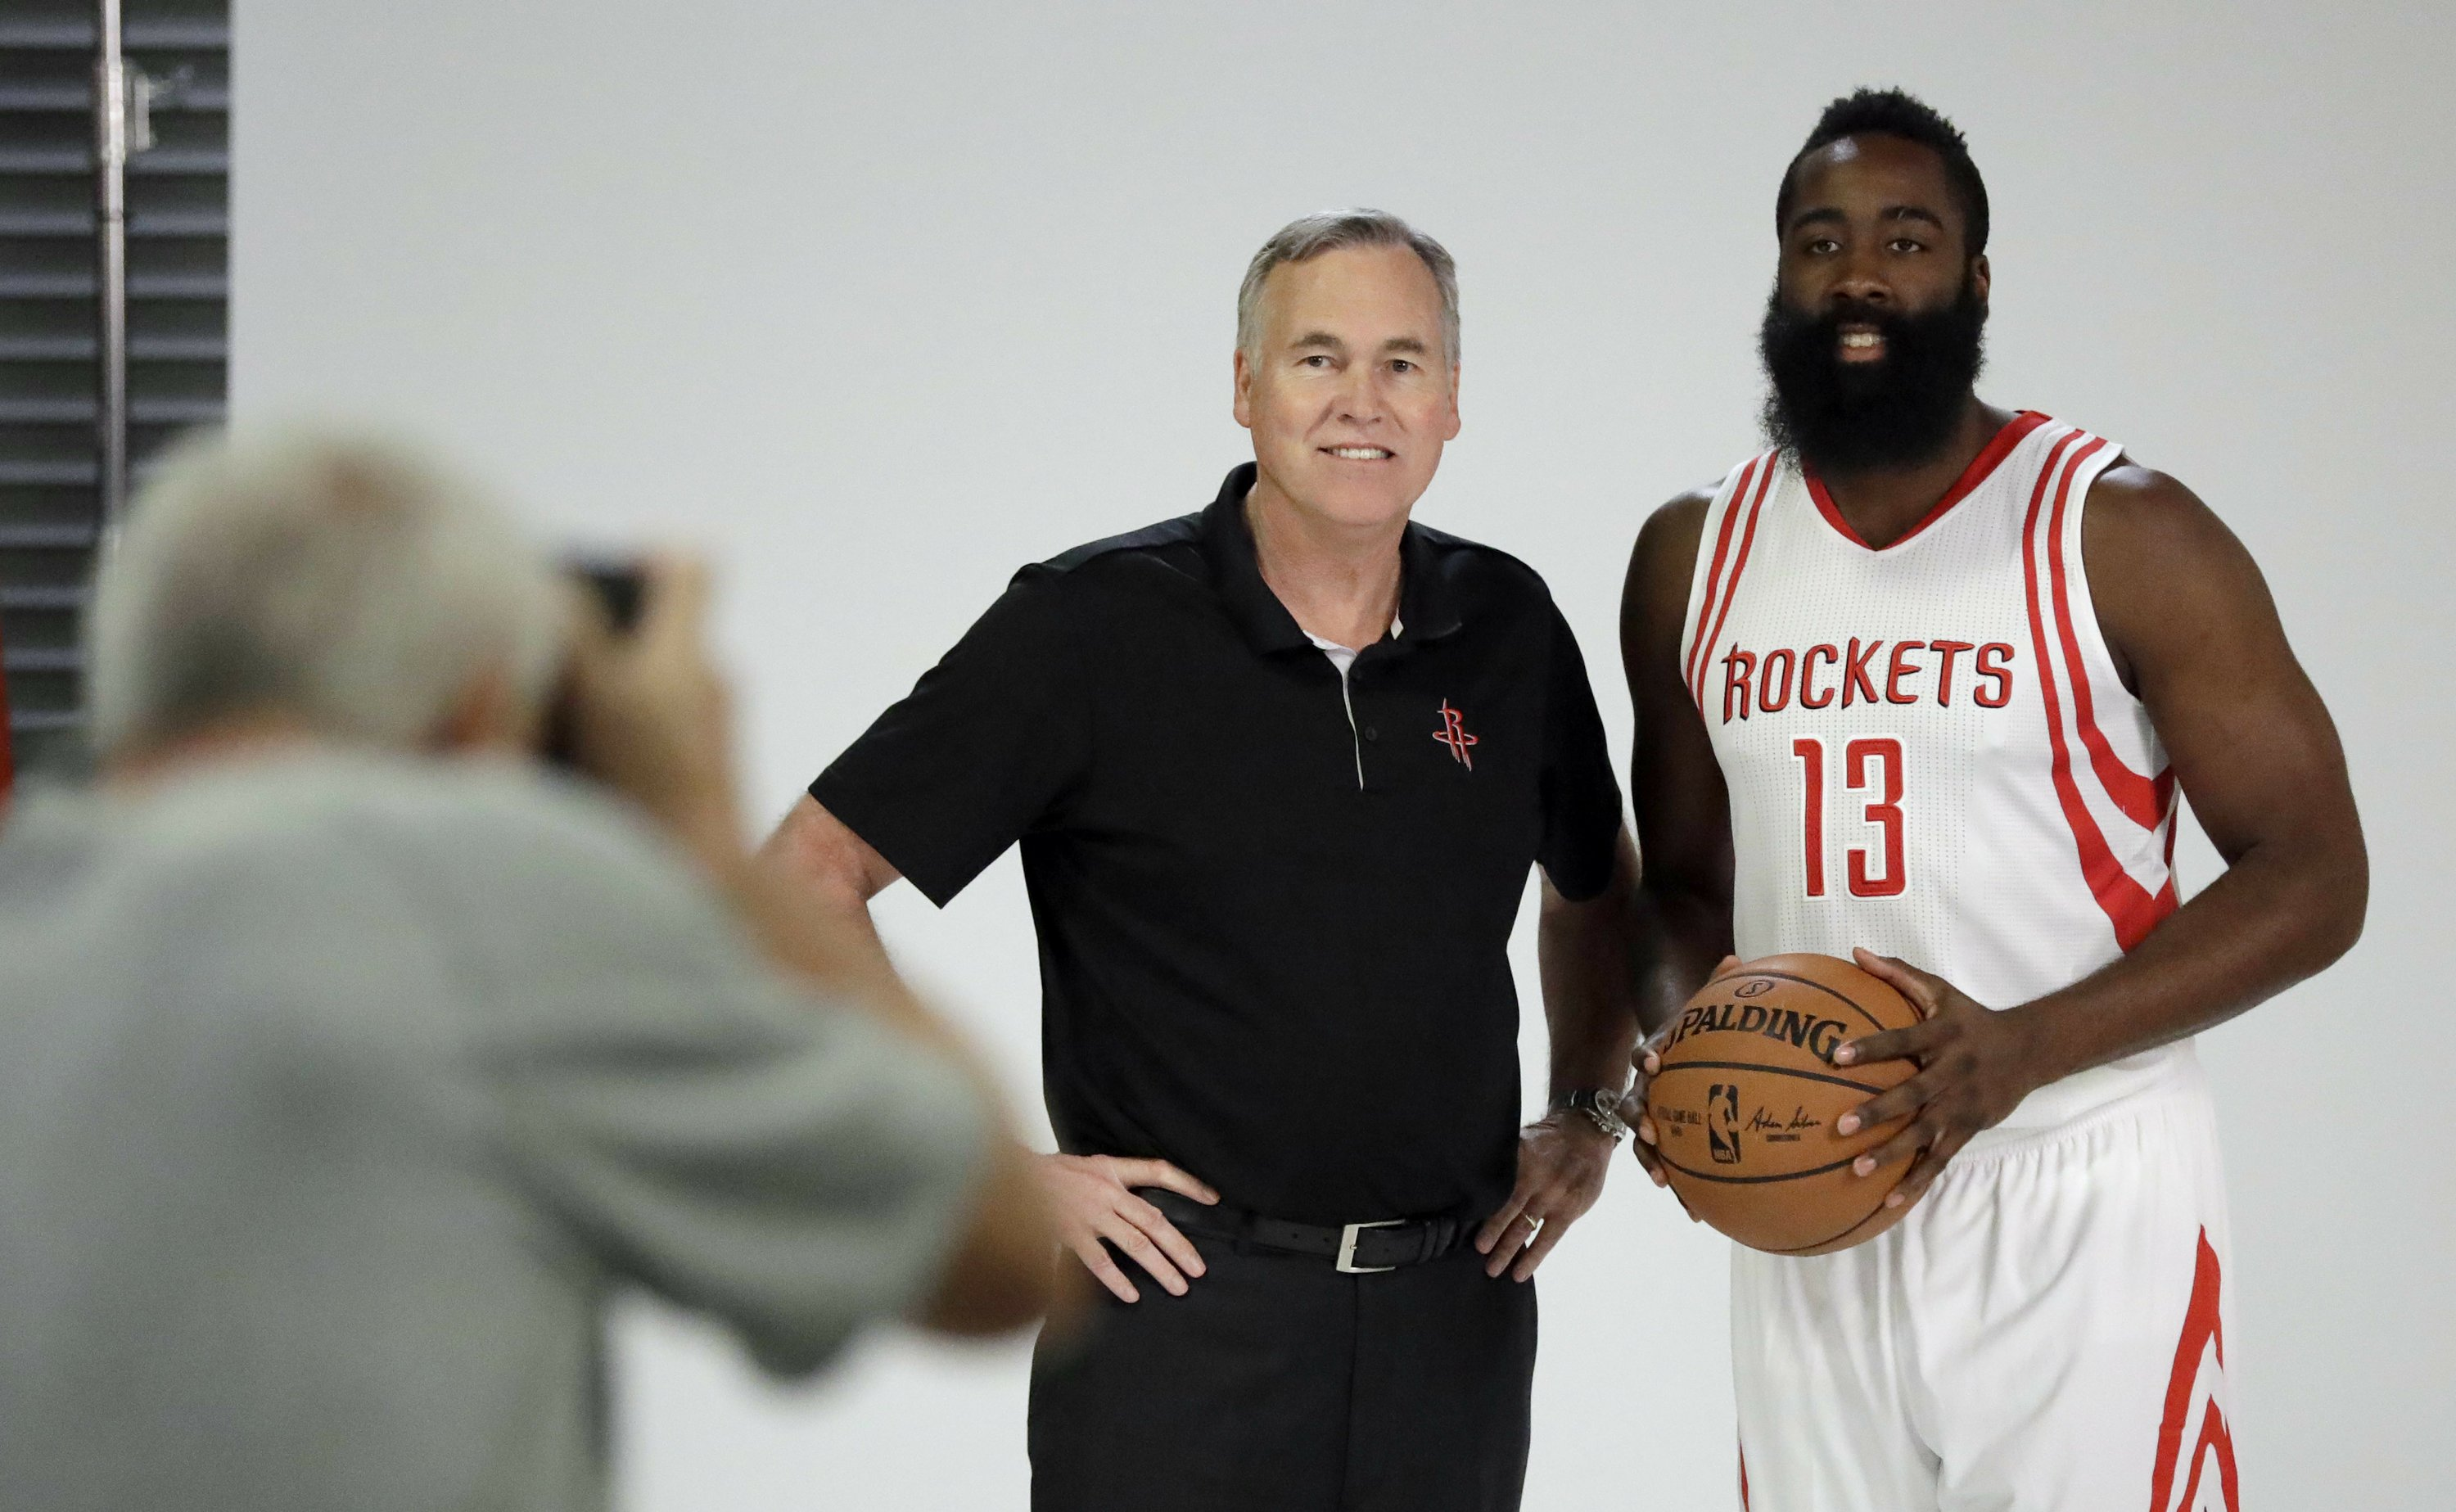 Around NBA, teams already discussing need for social change